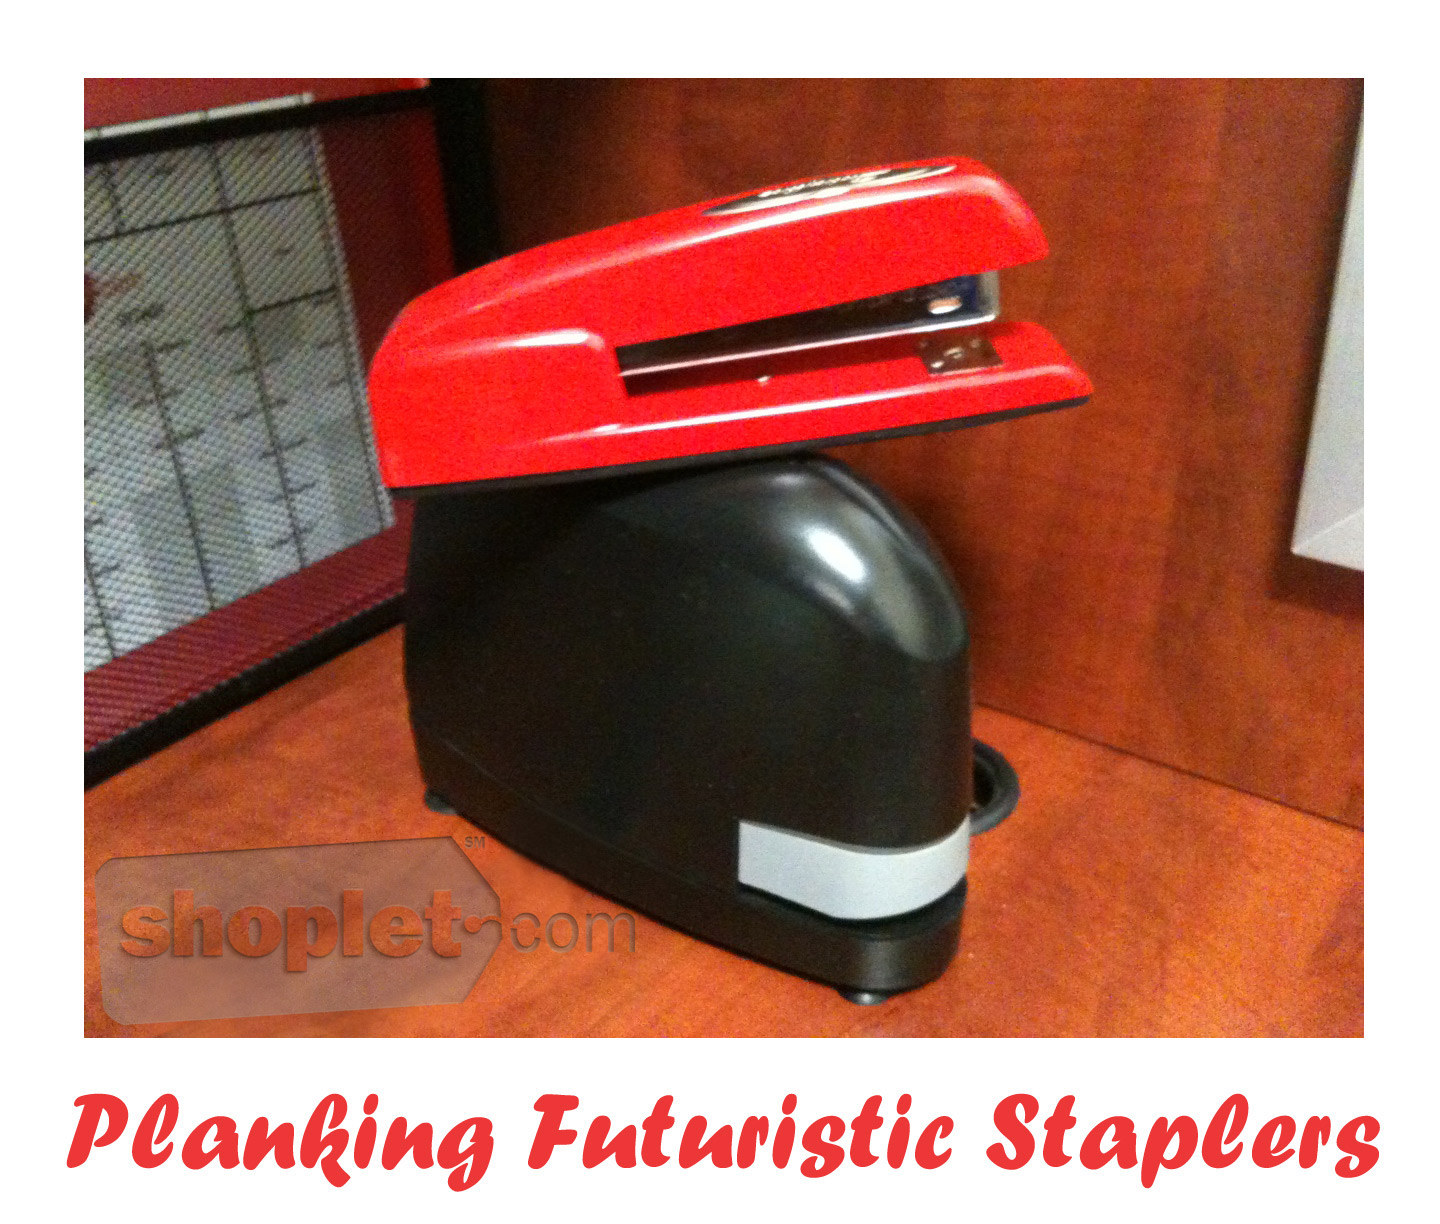 Shoplet Planking Futuristic Stapler1 Shoplet Planking Stapler Planks on Futuristic Stapler 